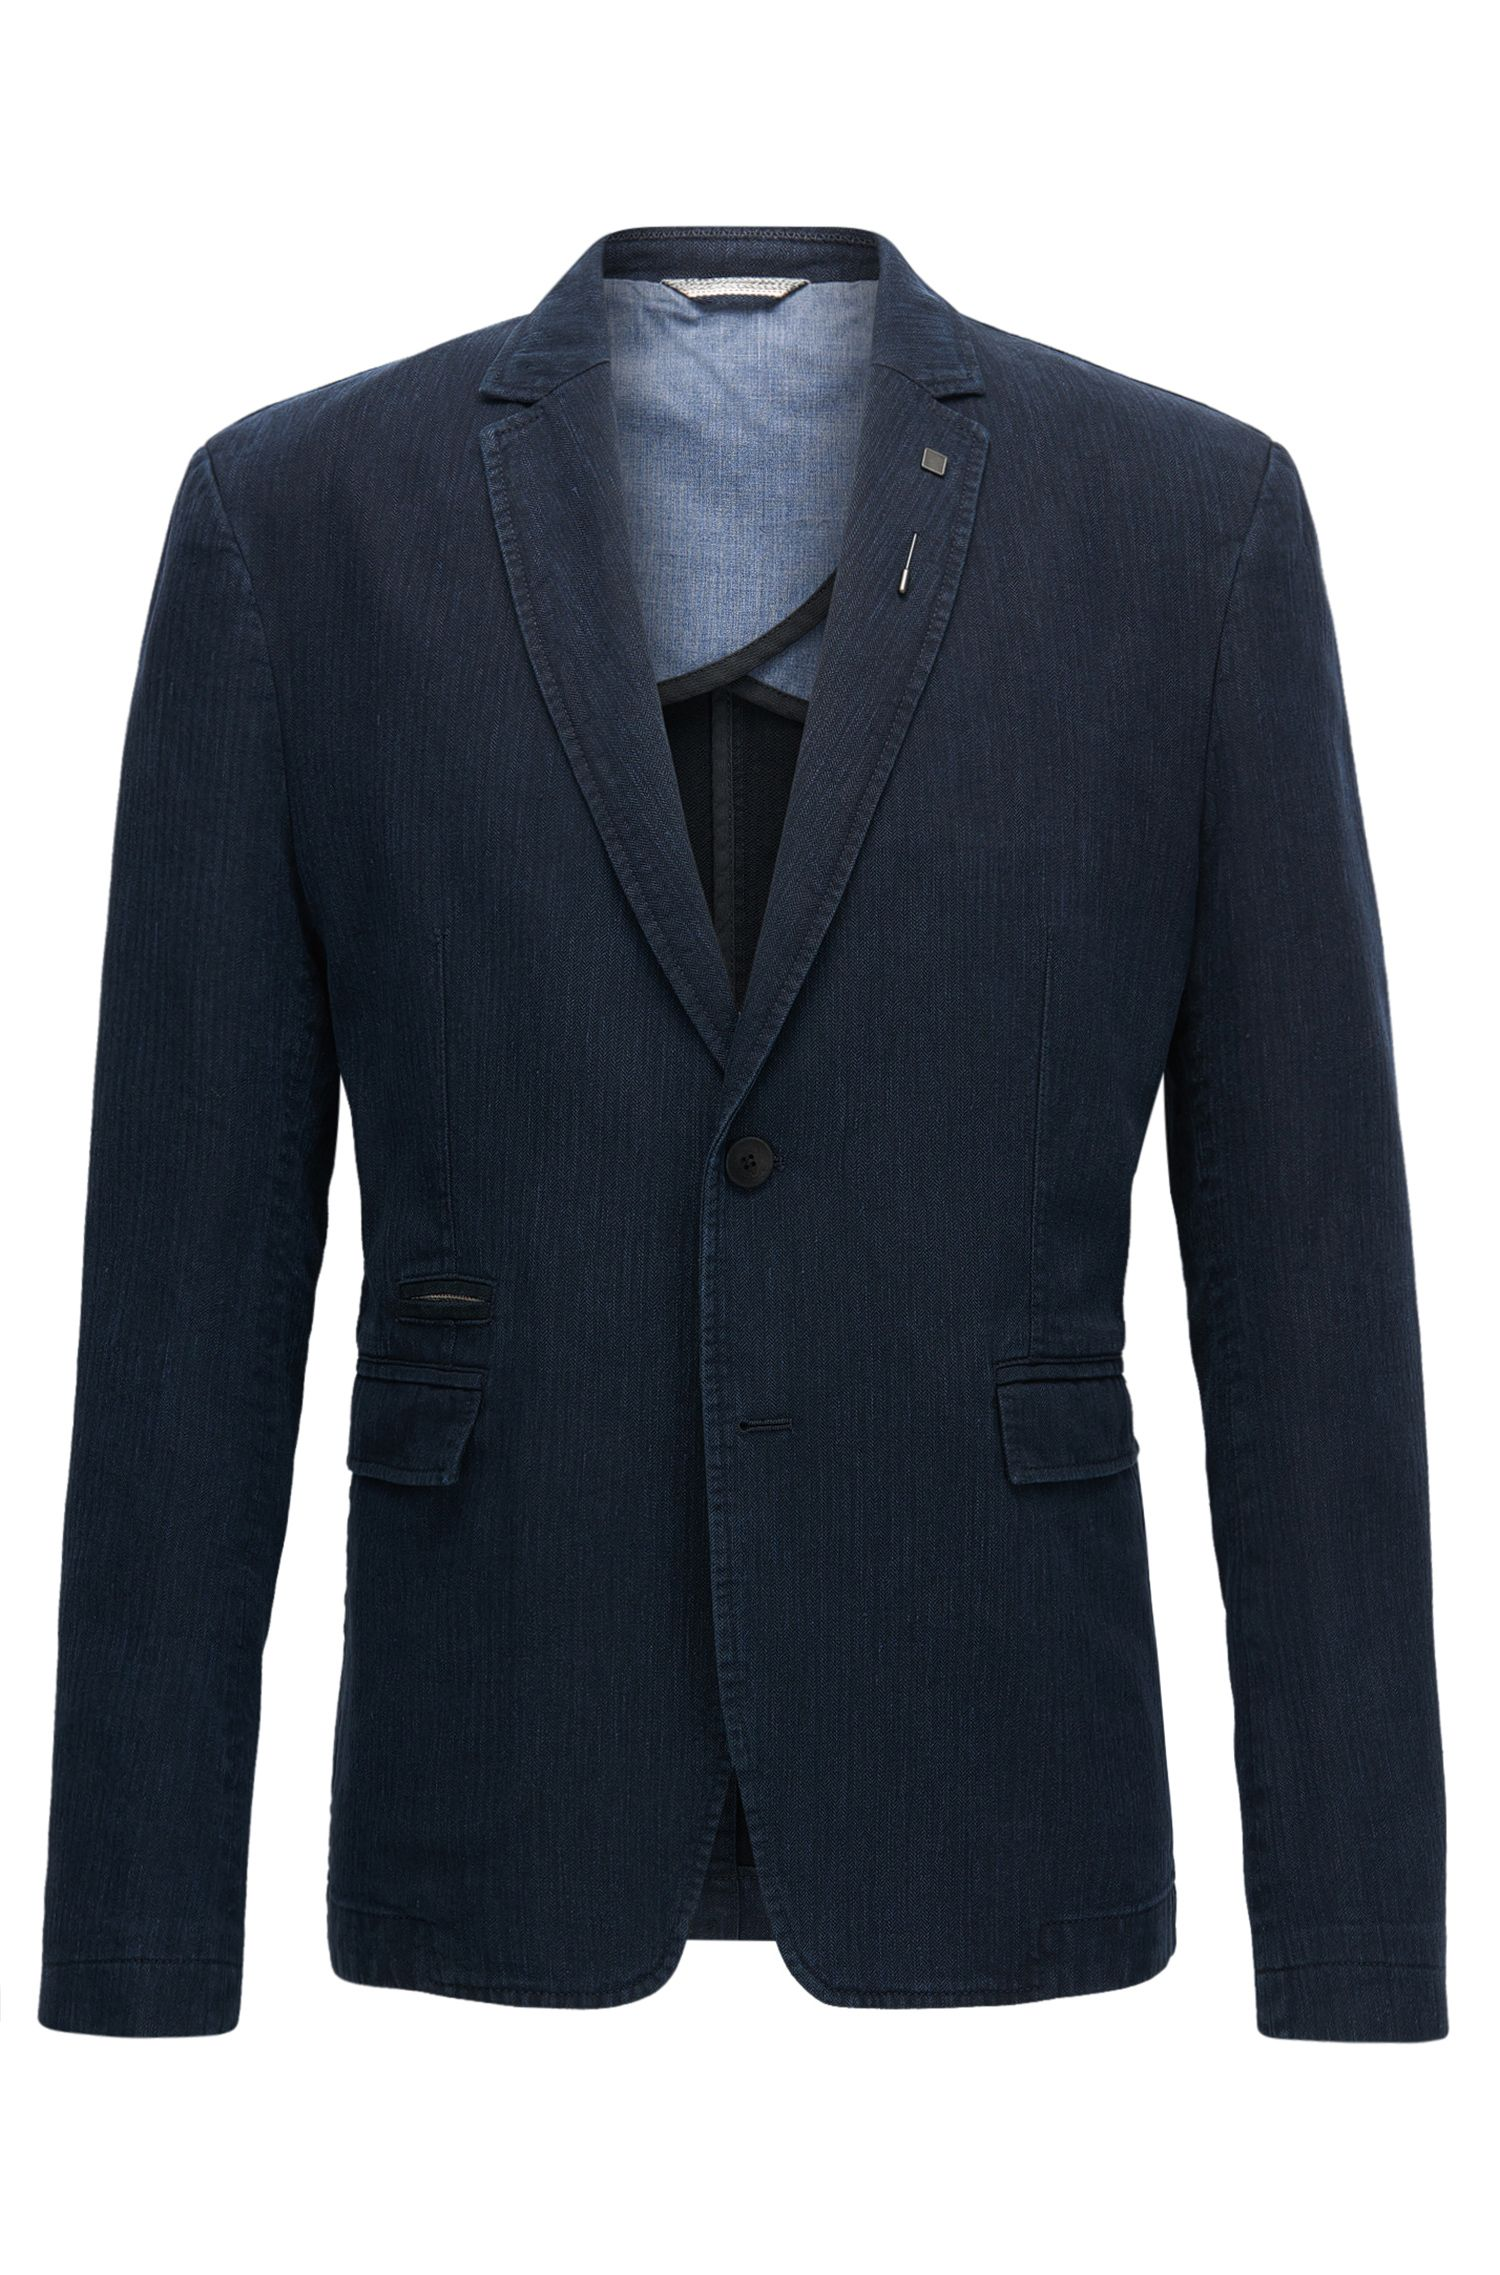 Slim-fit jacket in a mélange cotton blend